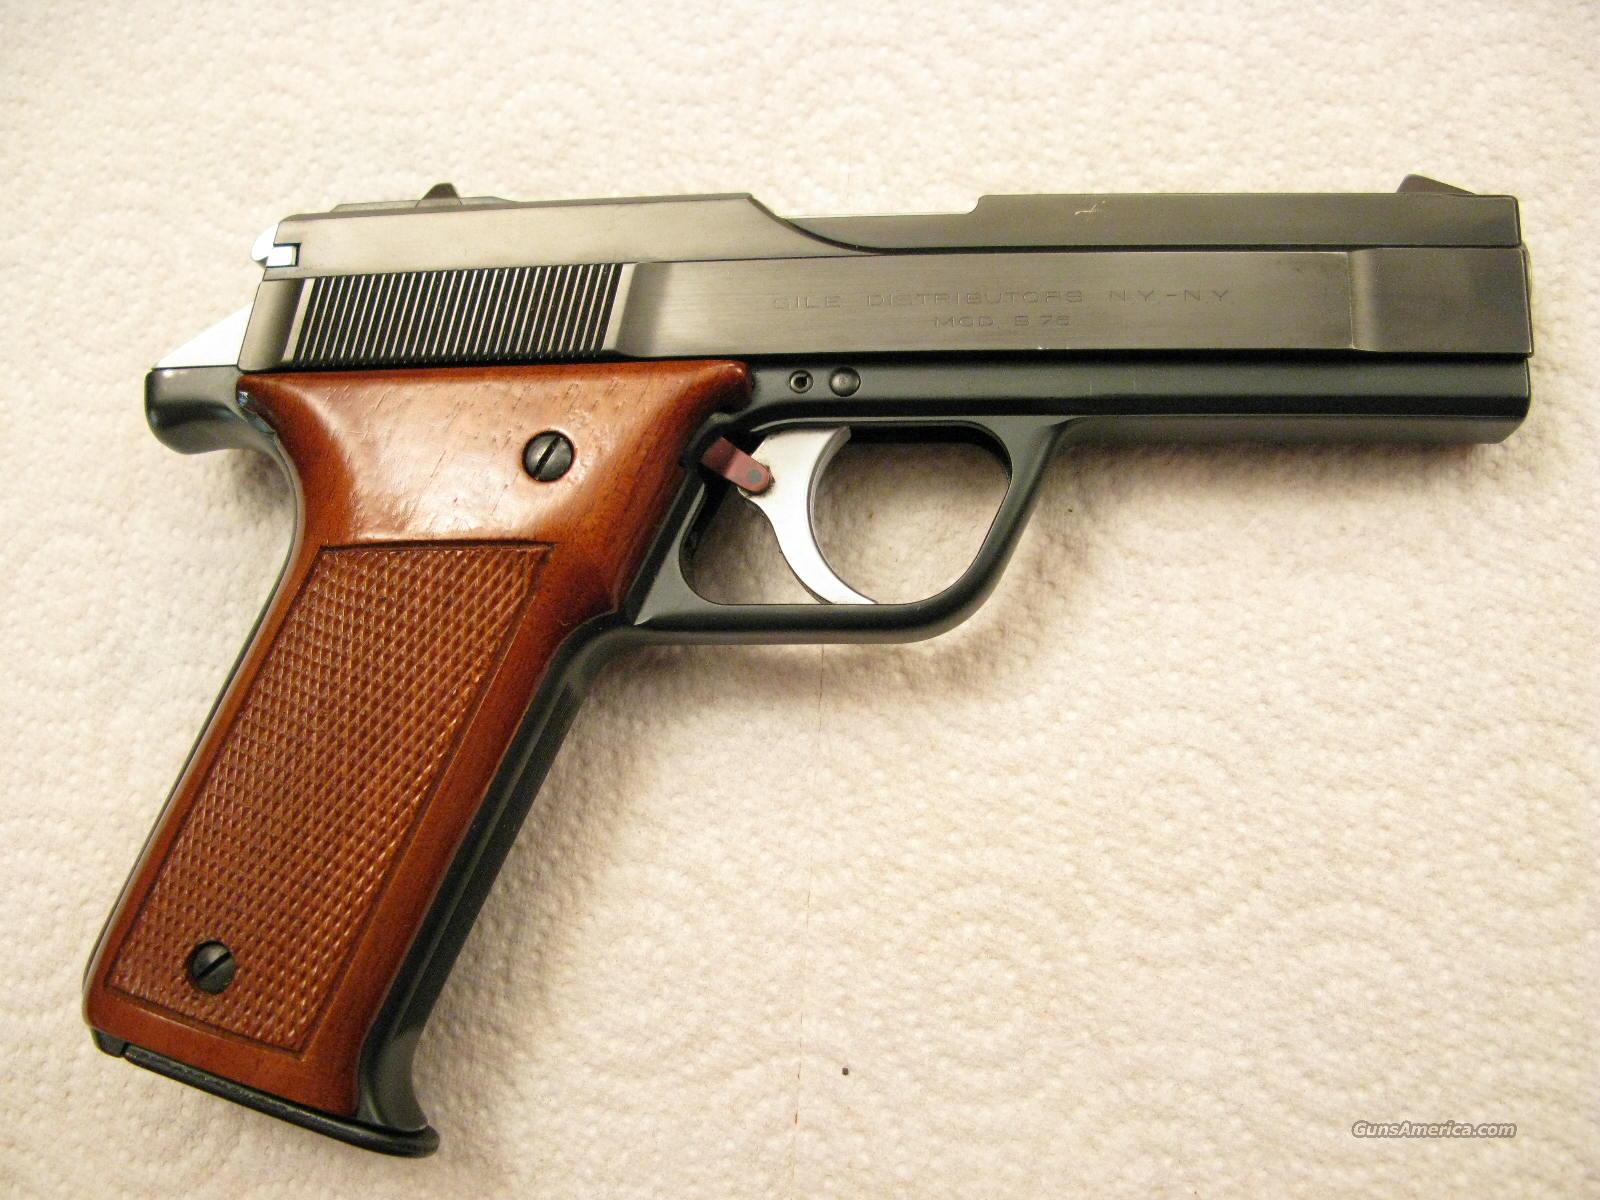 Benelli B 76  9MM Combat and Sporting Pistol N.Y - N.Y. Address  Guns > Pistols > Benelli Pistols